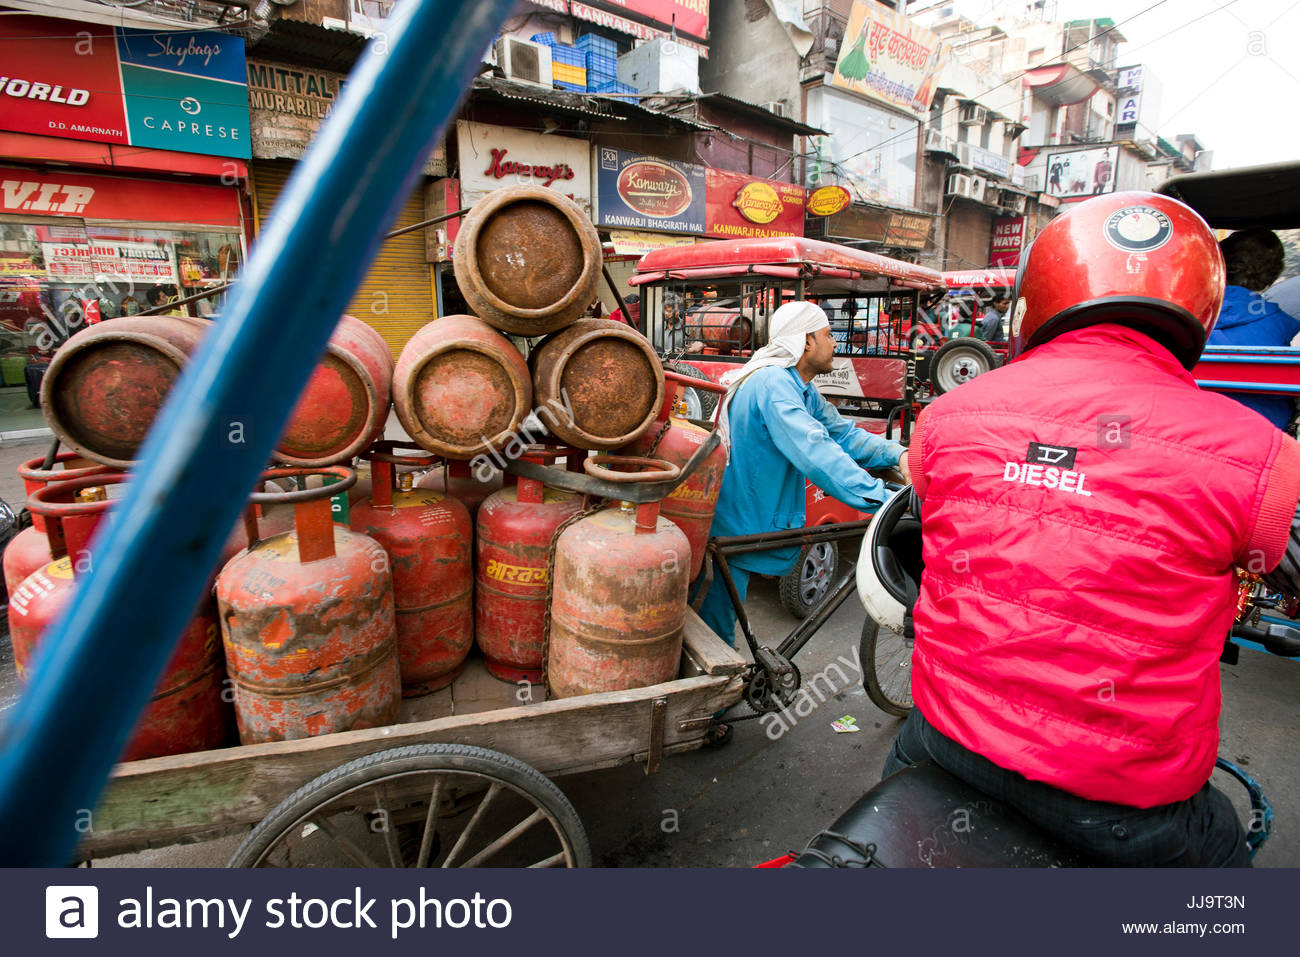 An Indian man carries takes of propane on his bicycle rickshaw in New Delhi, India. - Stock Image